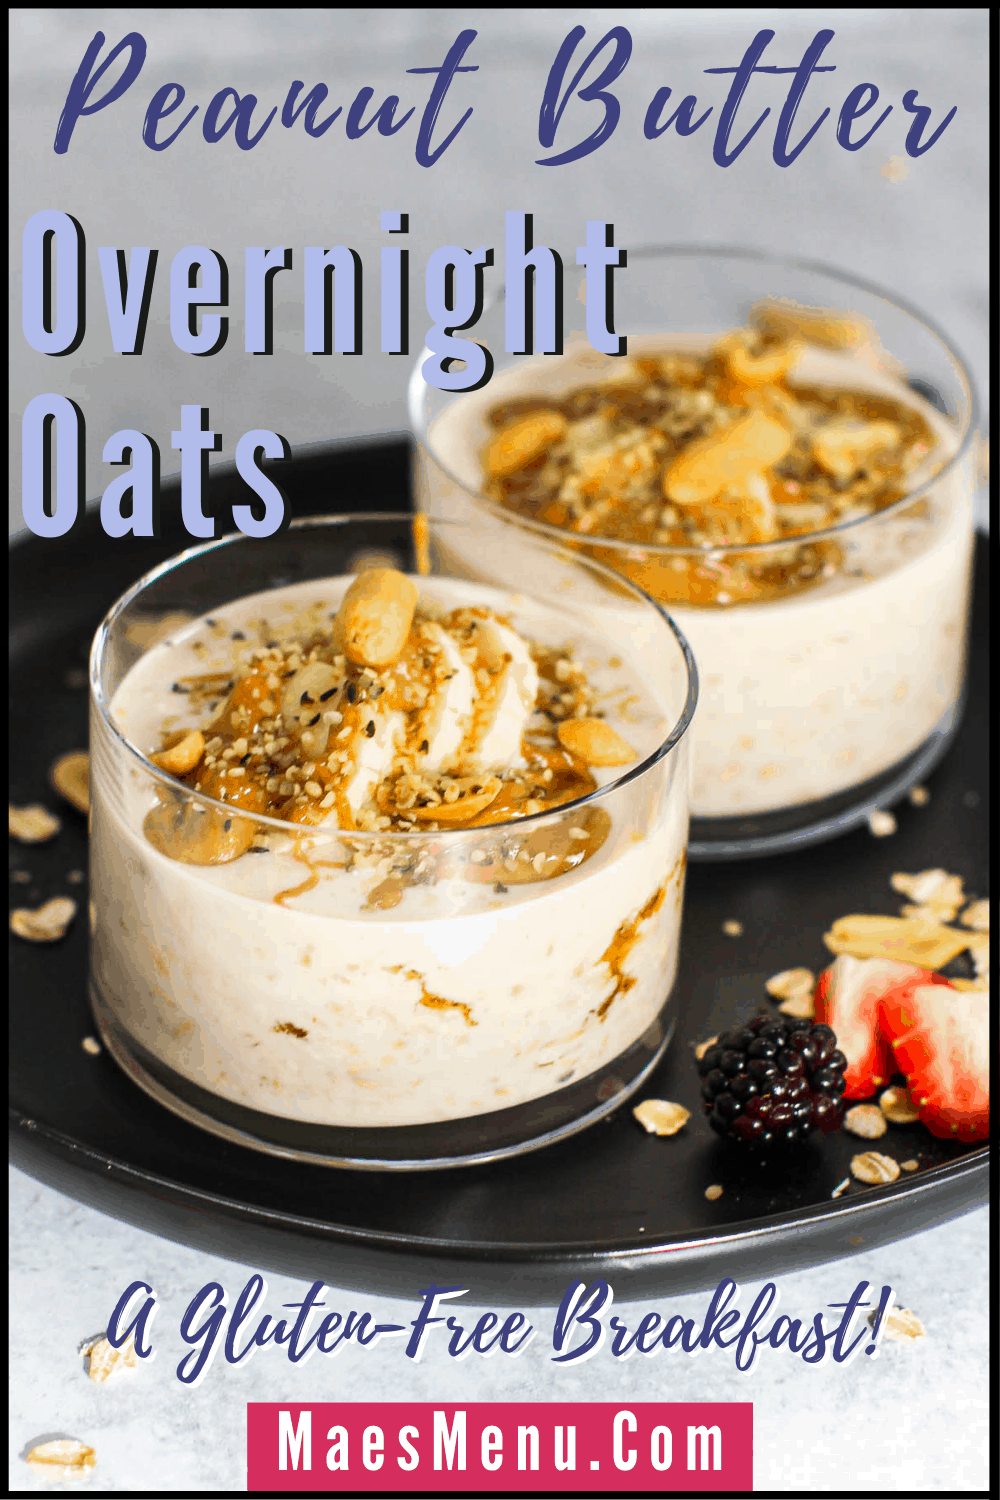 A pinterest pin for peanut butter overnight oats. On the image is an up-close shot of the two cups of overnight oats